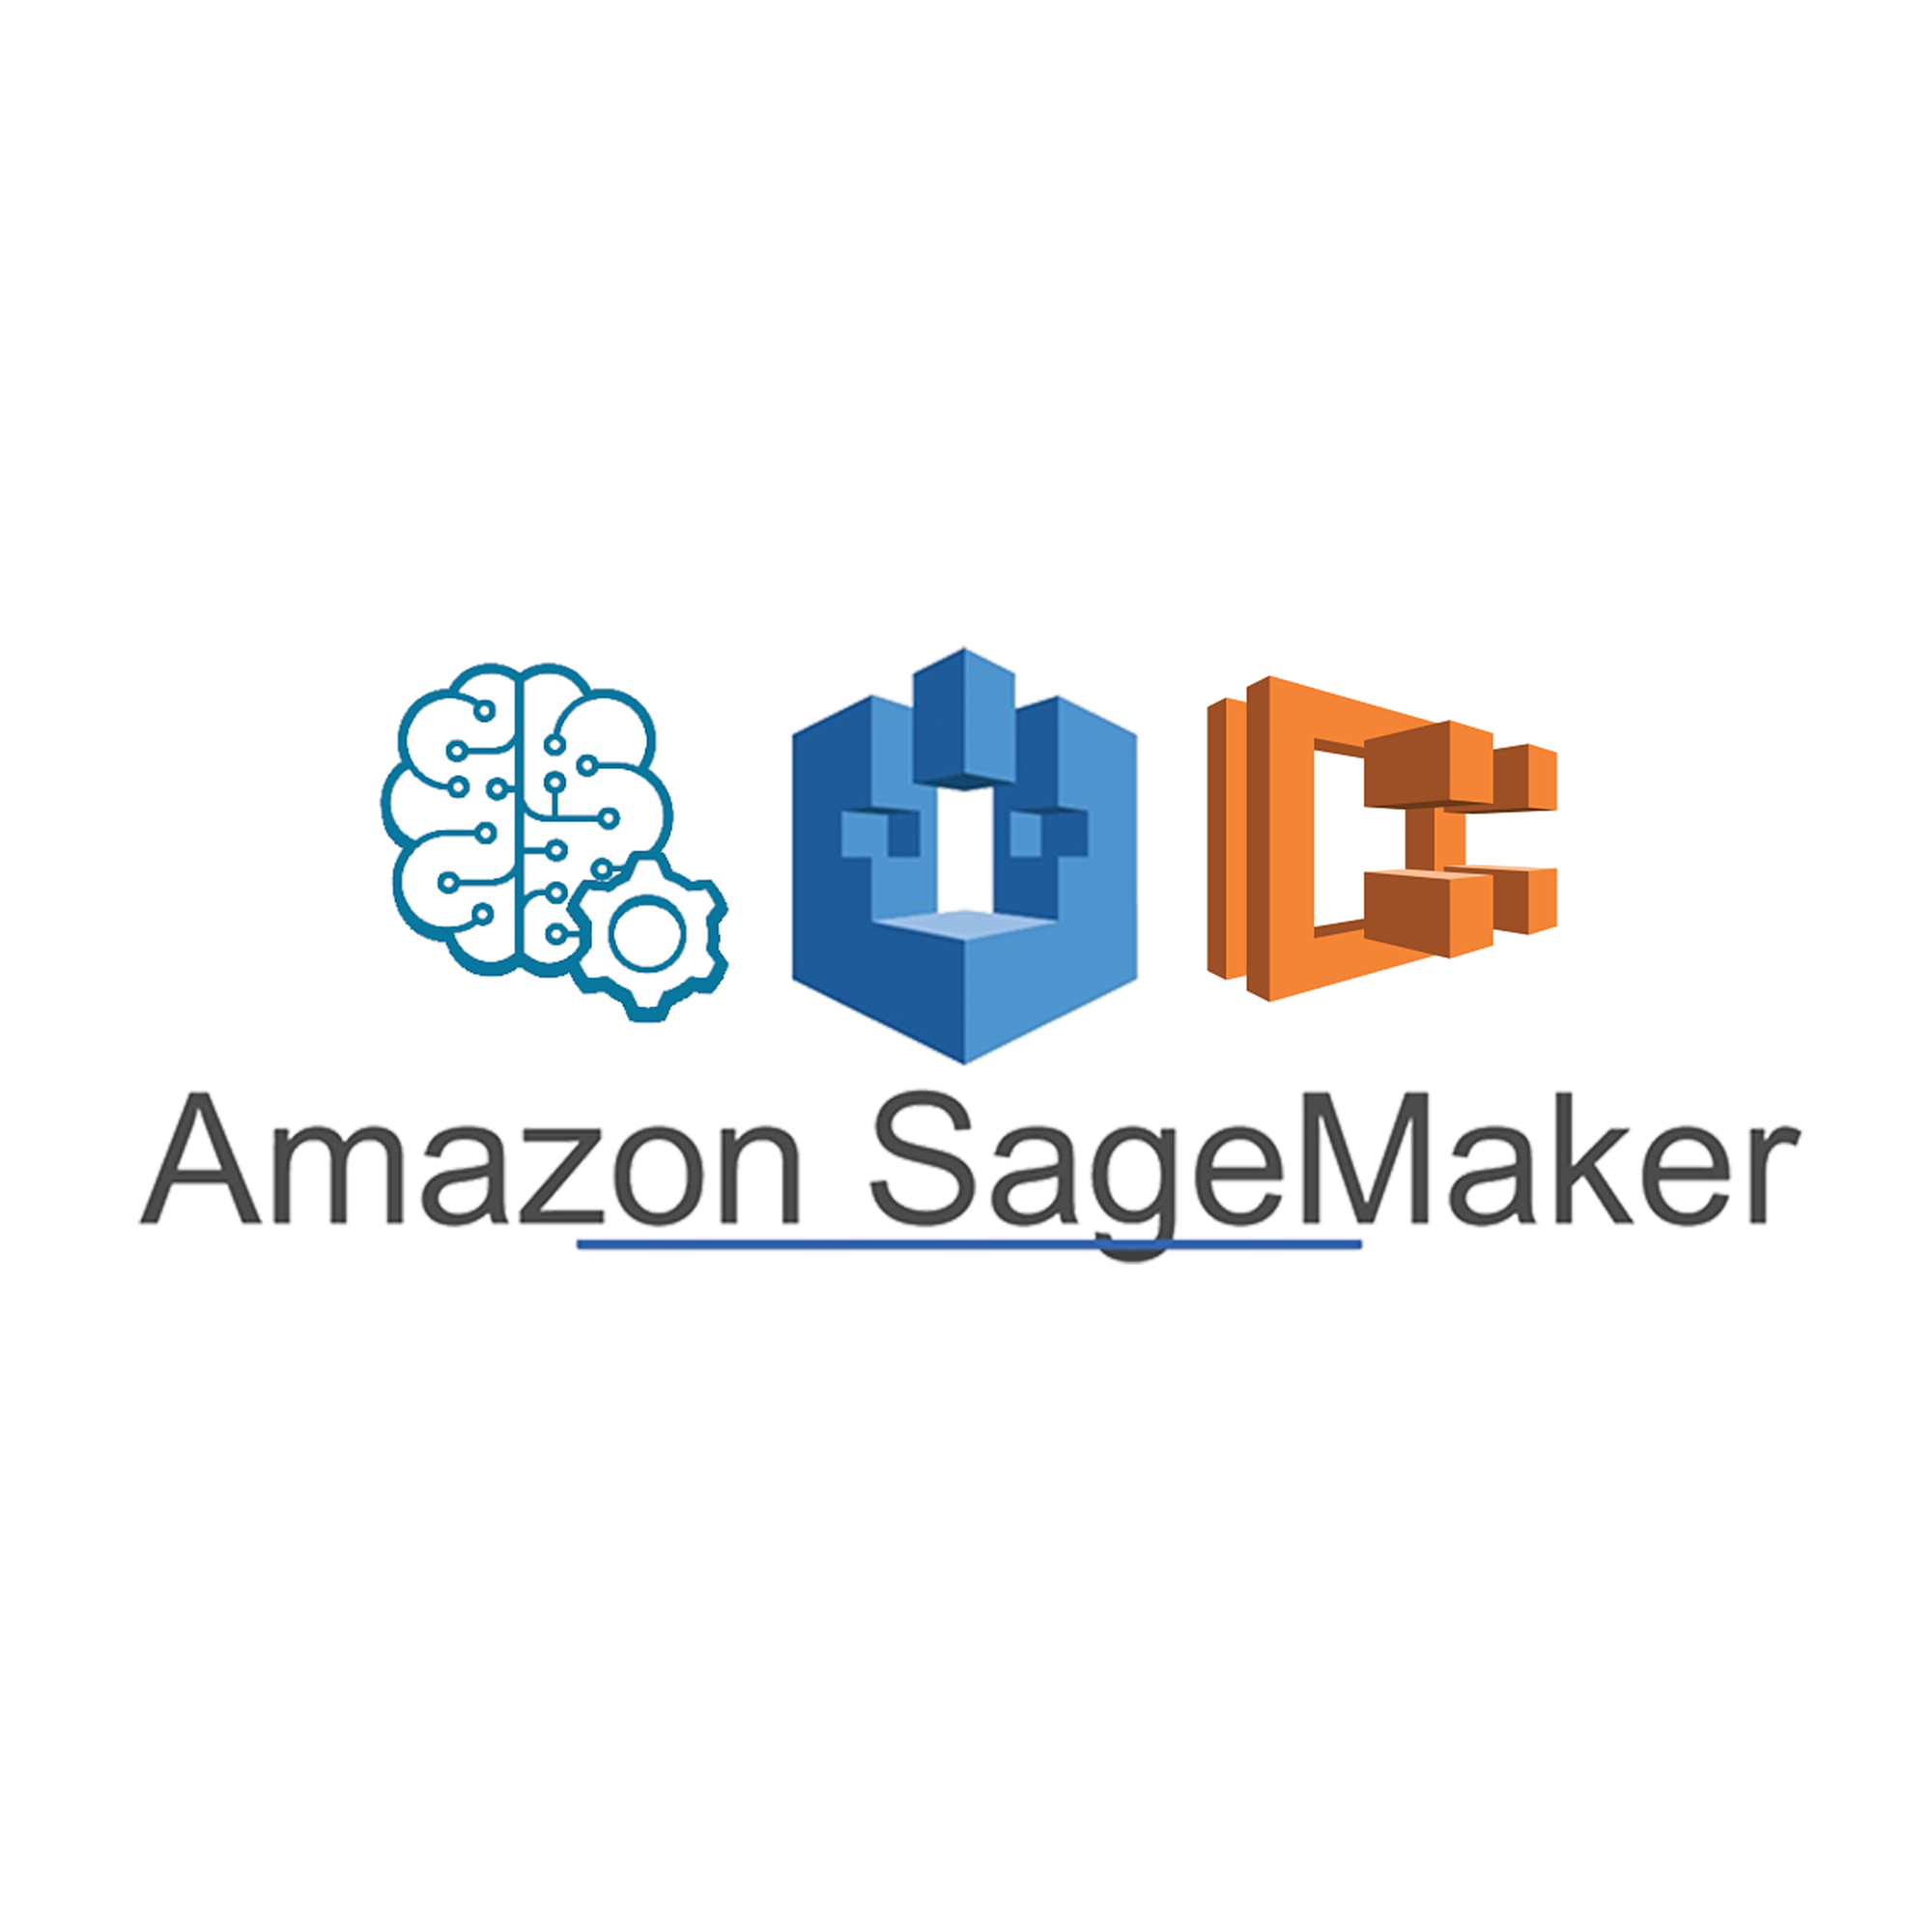 Using a custom model for ML inference with Amazon SageMaker